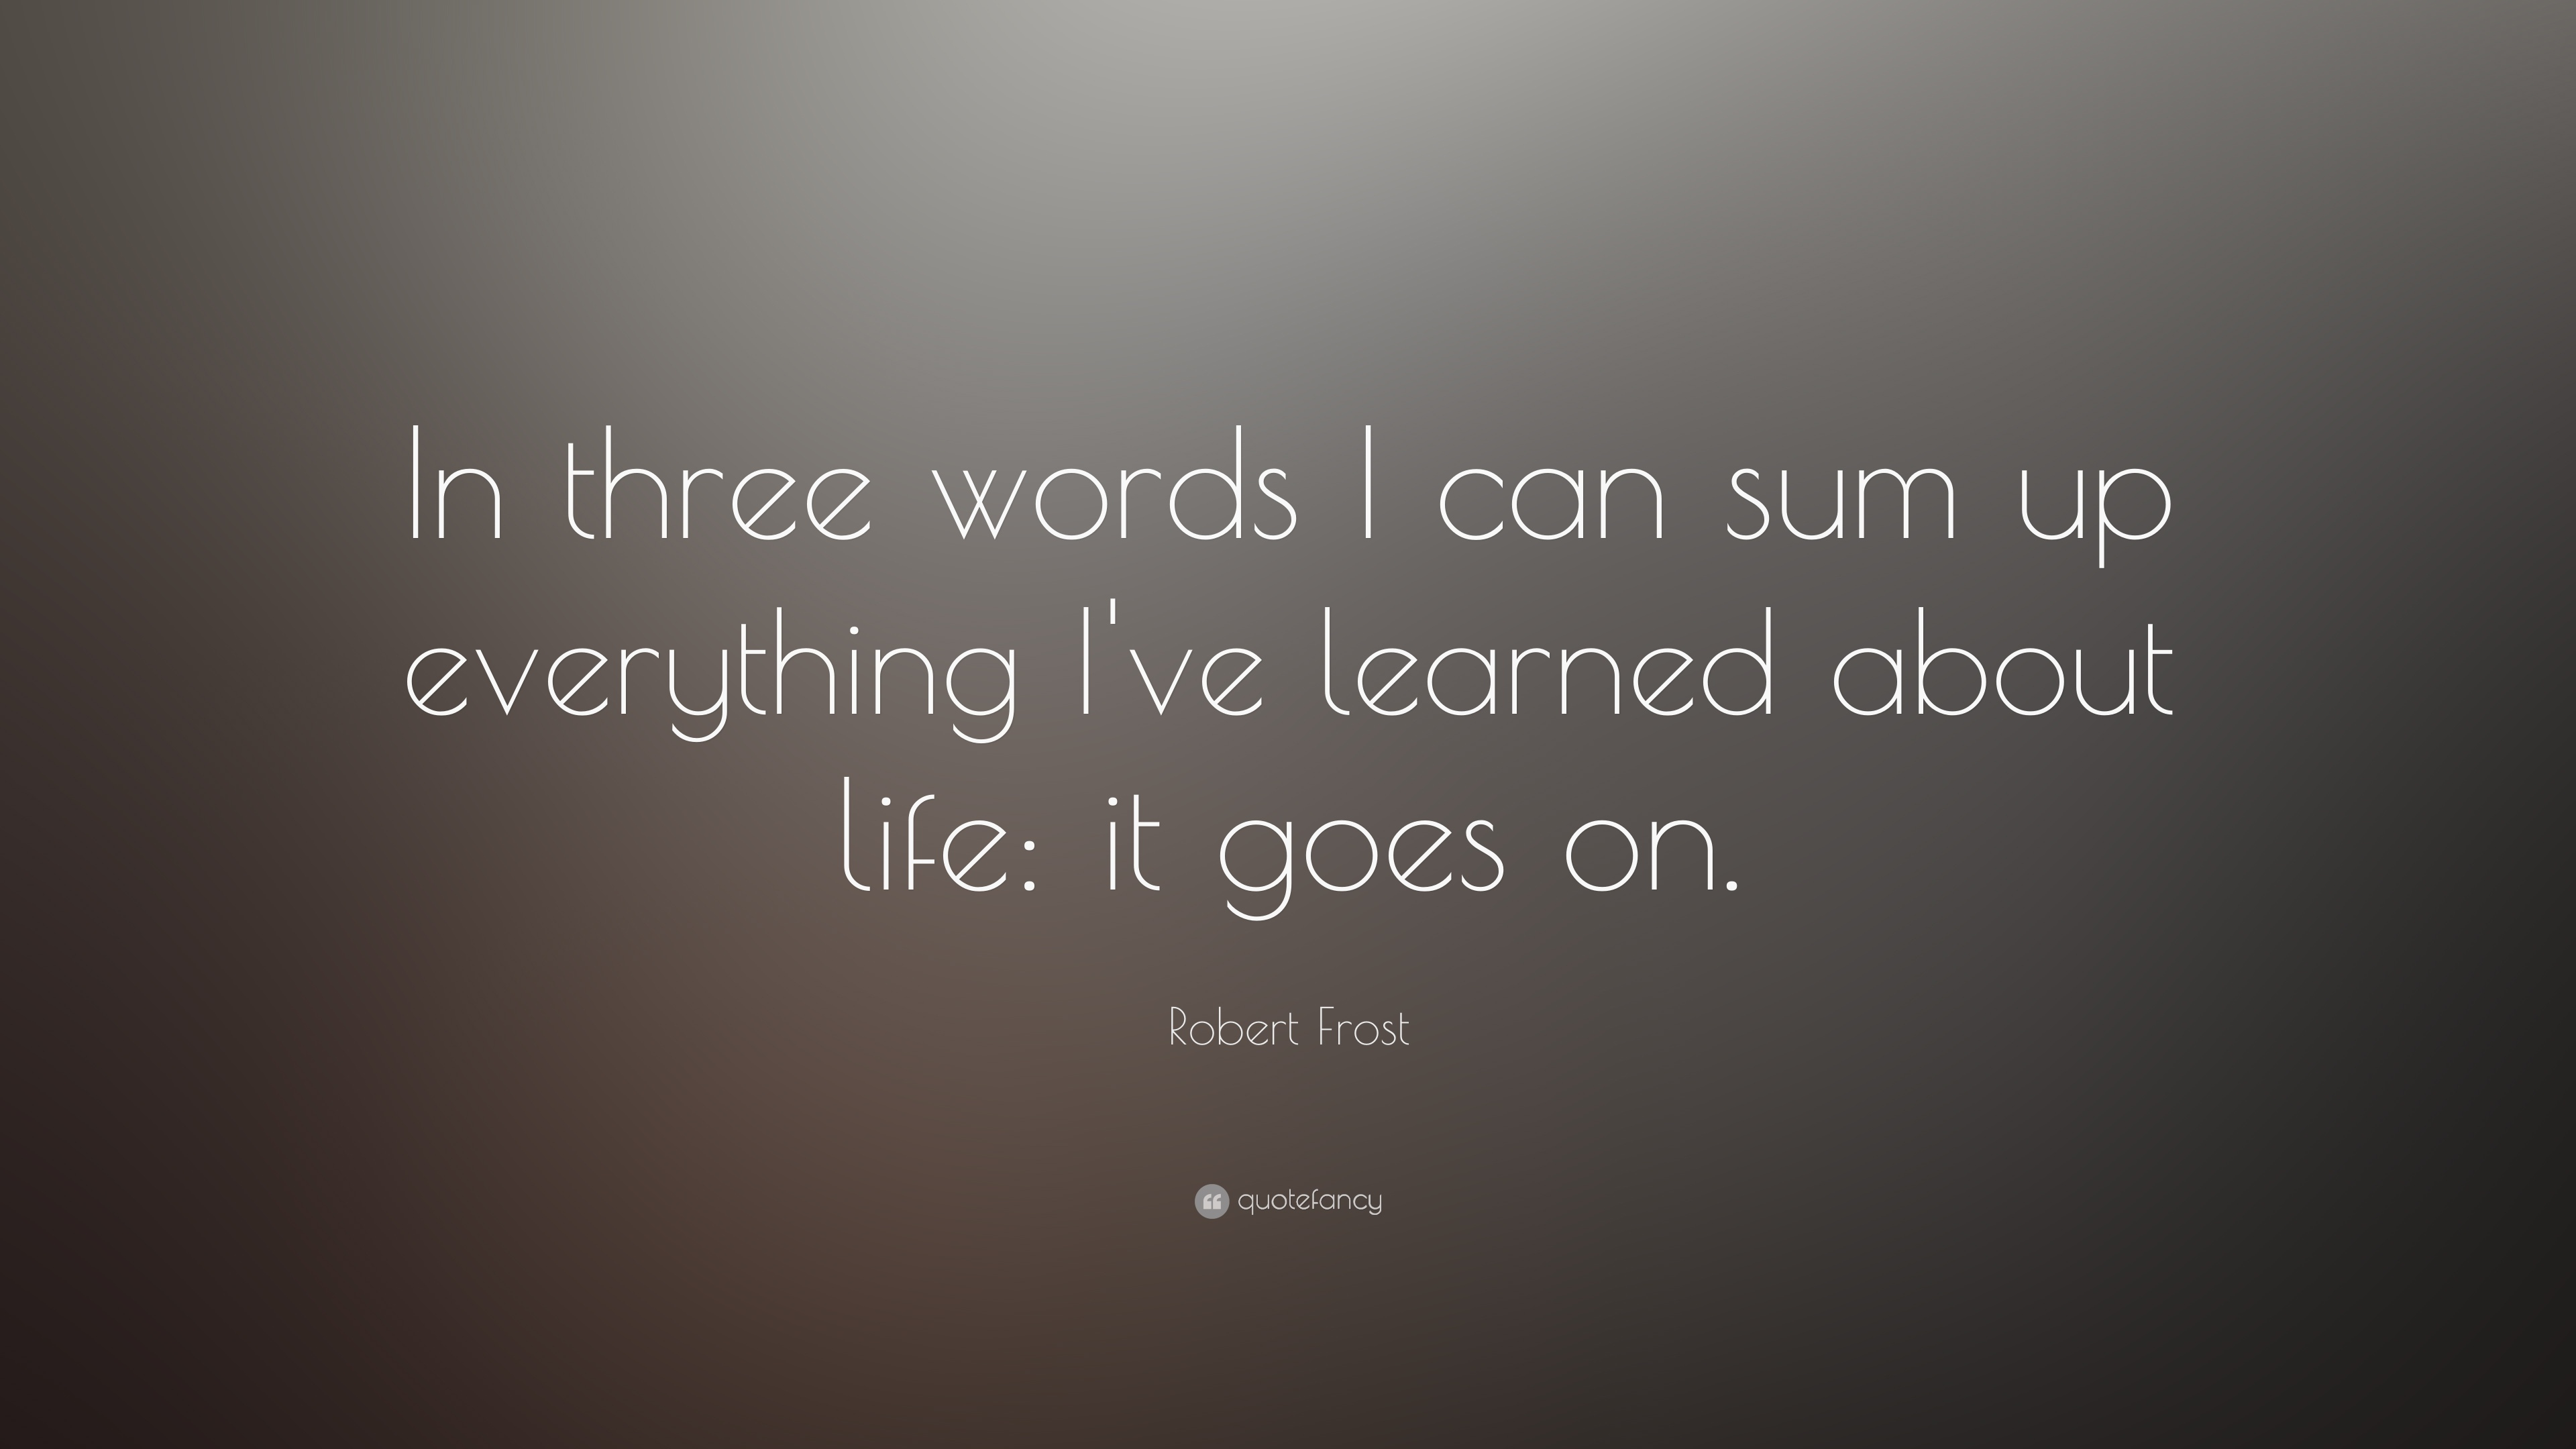 Robert Frost Quote In Three Words I Can Sum Up Everything I Ve Learned About Life It Goes On 23 Wallpapers Quotefancy